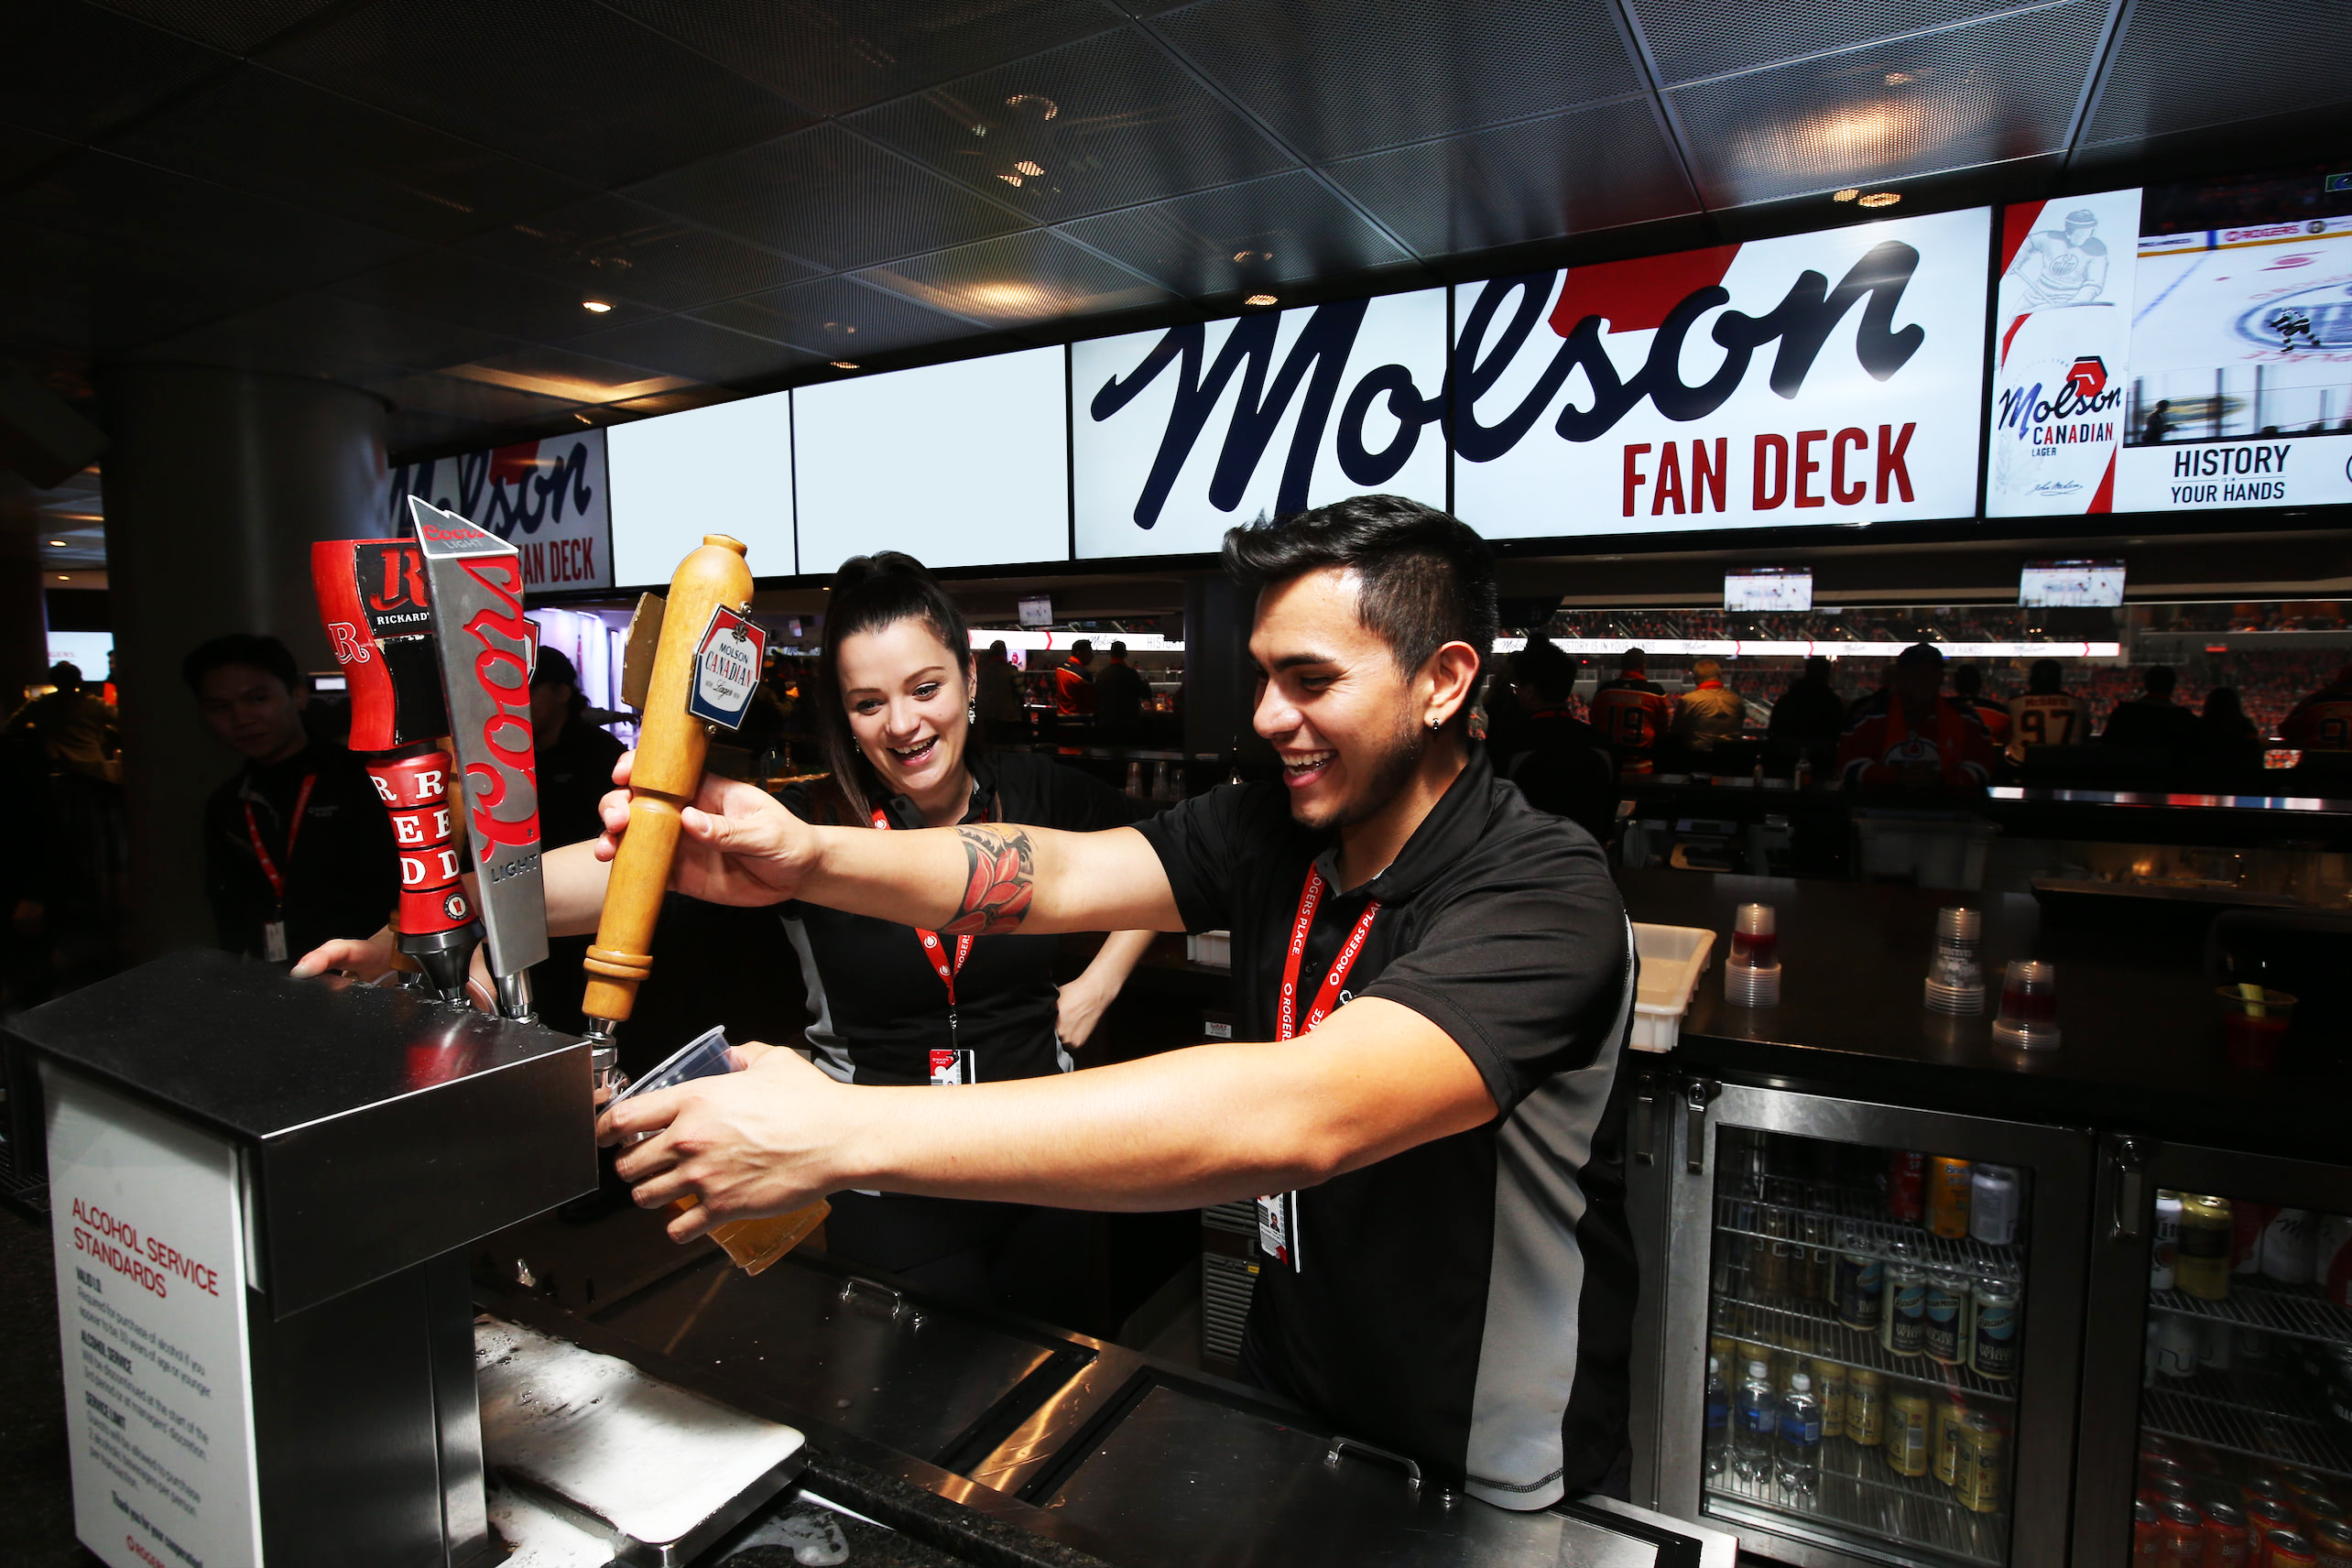 Molson Fan Deck (North)